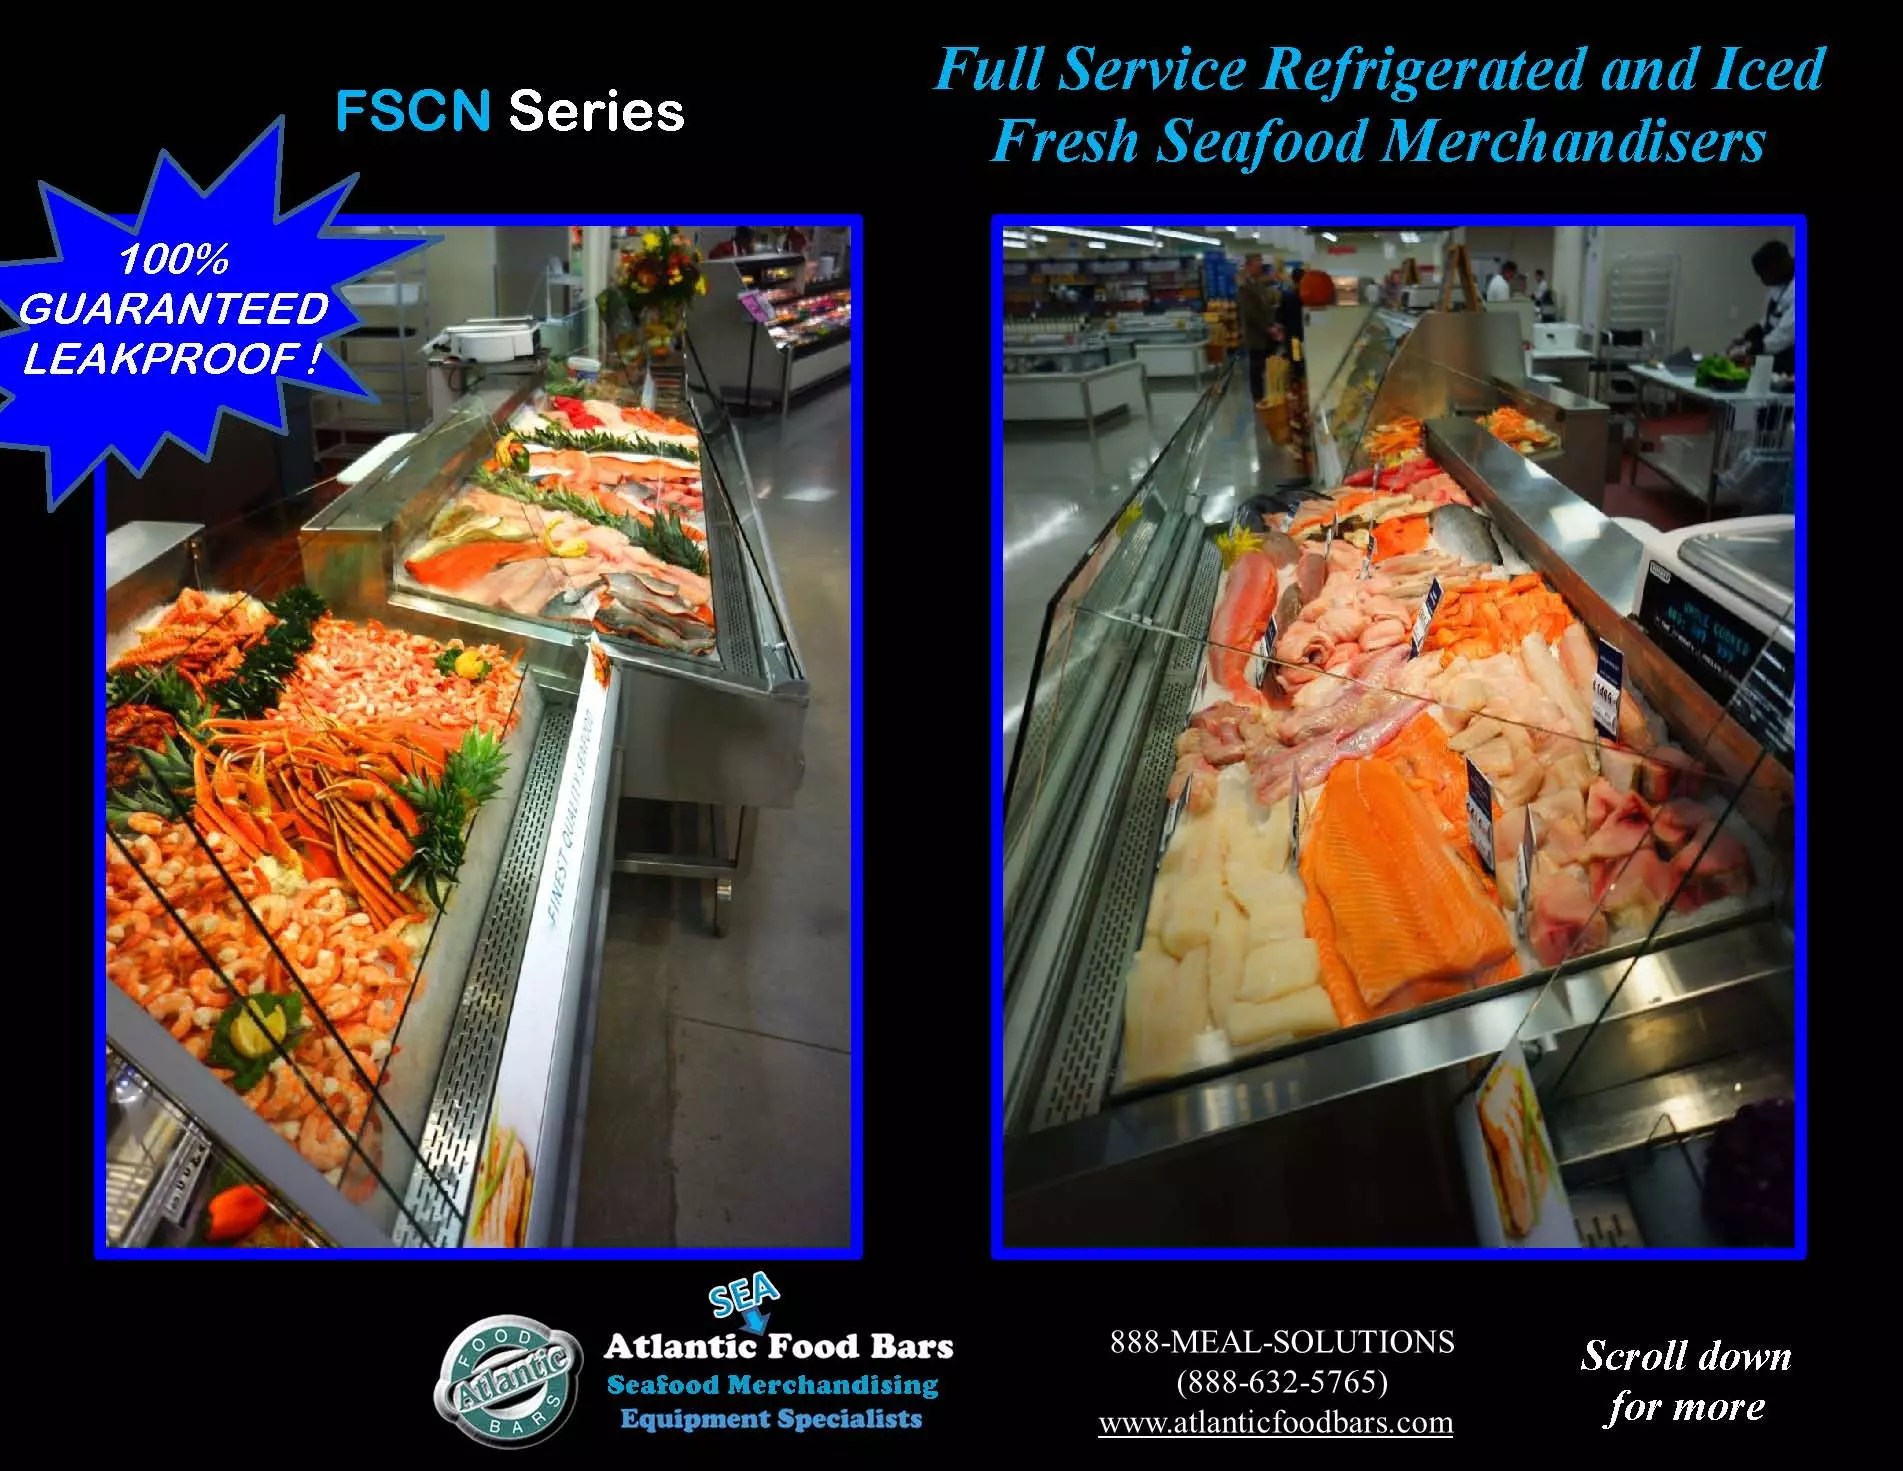 Atlantic food bars 4 39 and 8 39 refrigerated seafood lineup for Food bar 8 0